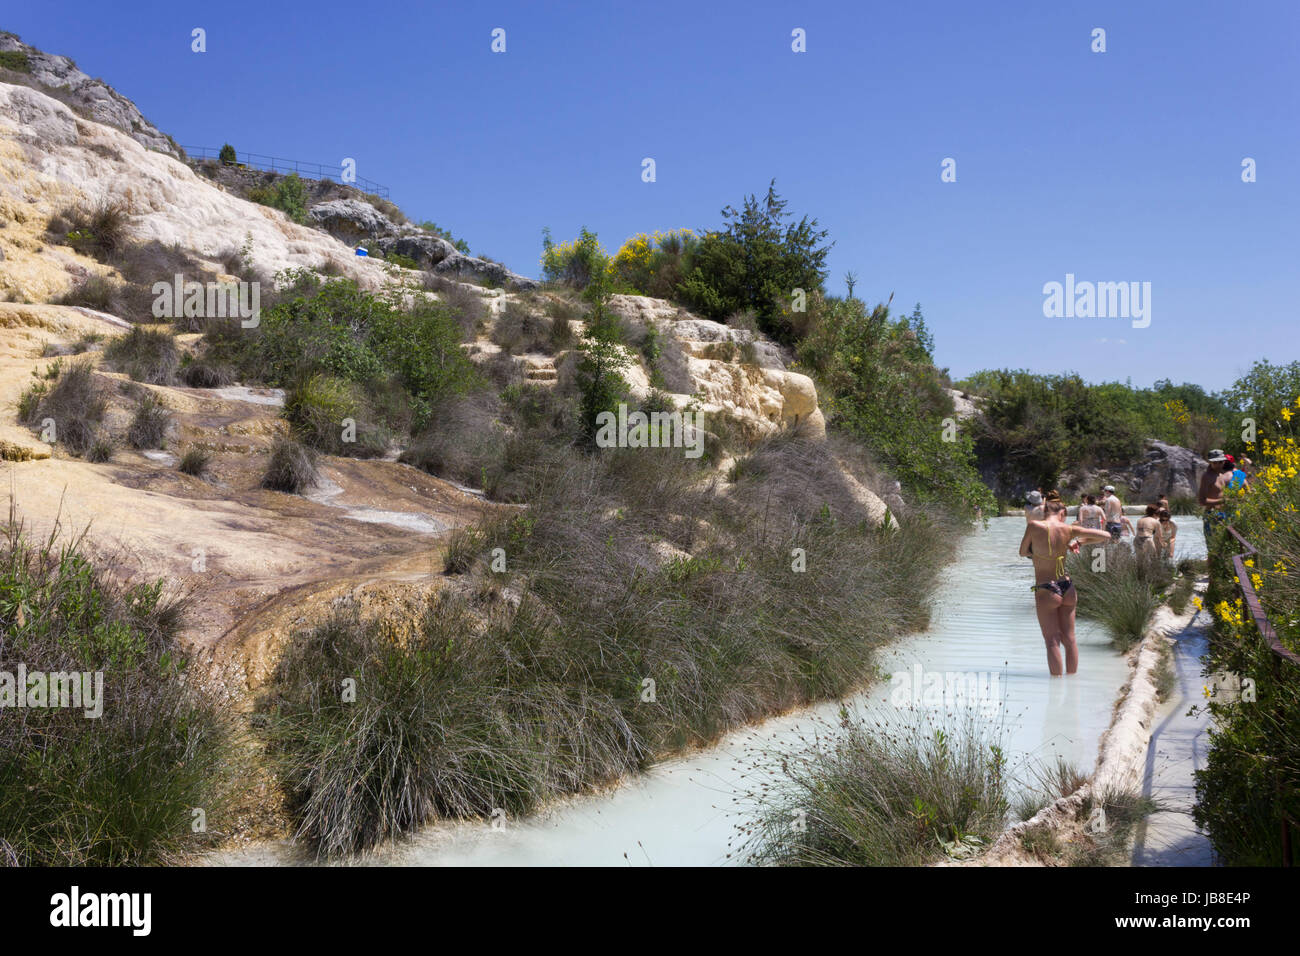 BAGNI VIGNONE, ITALY - JUNE 3 2017: The scenic hot spring pool of ...